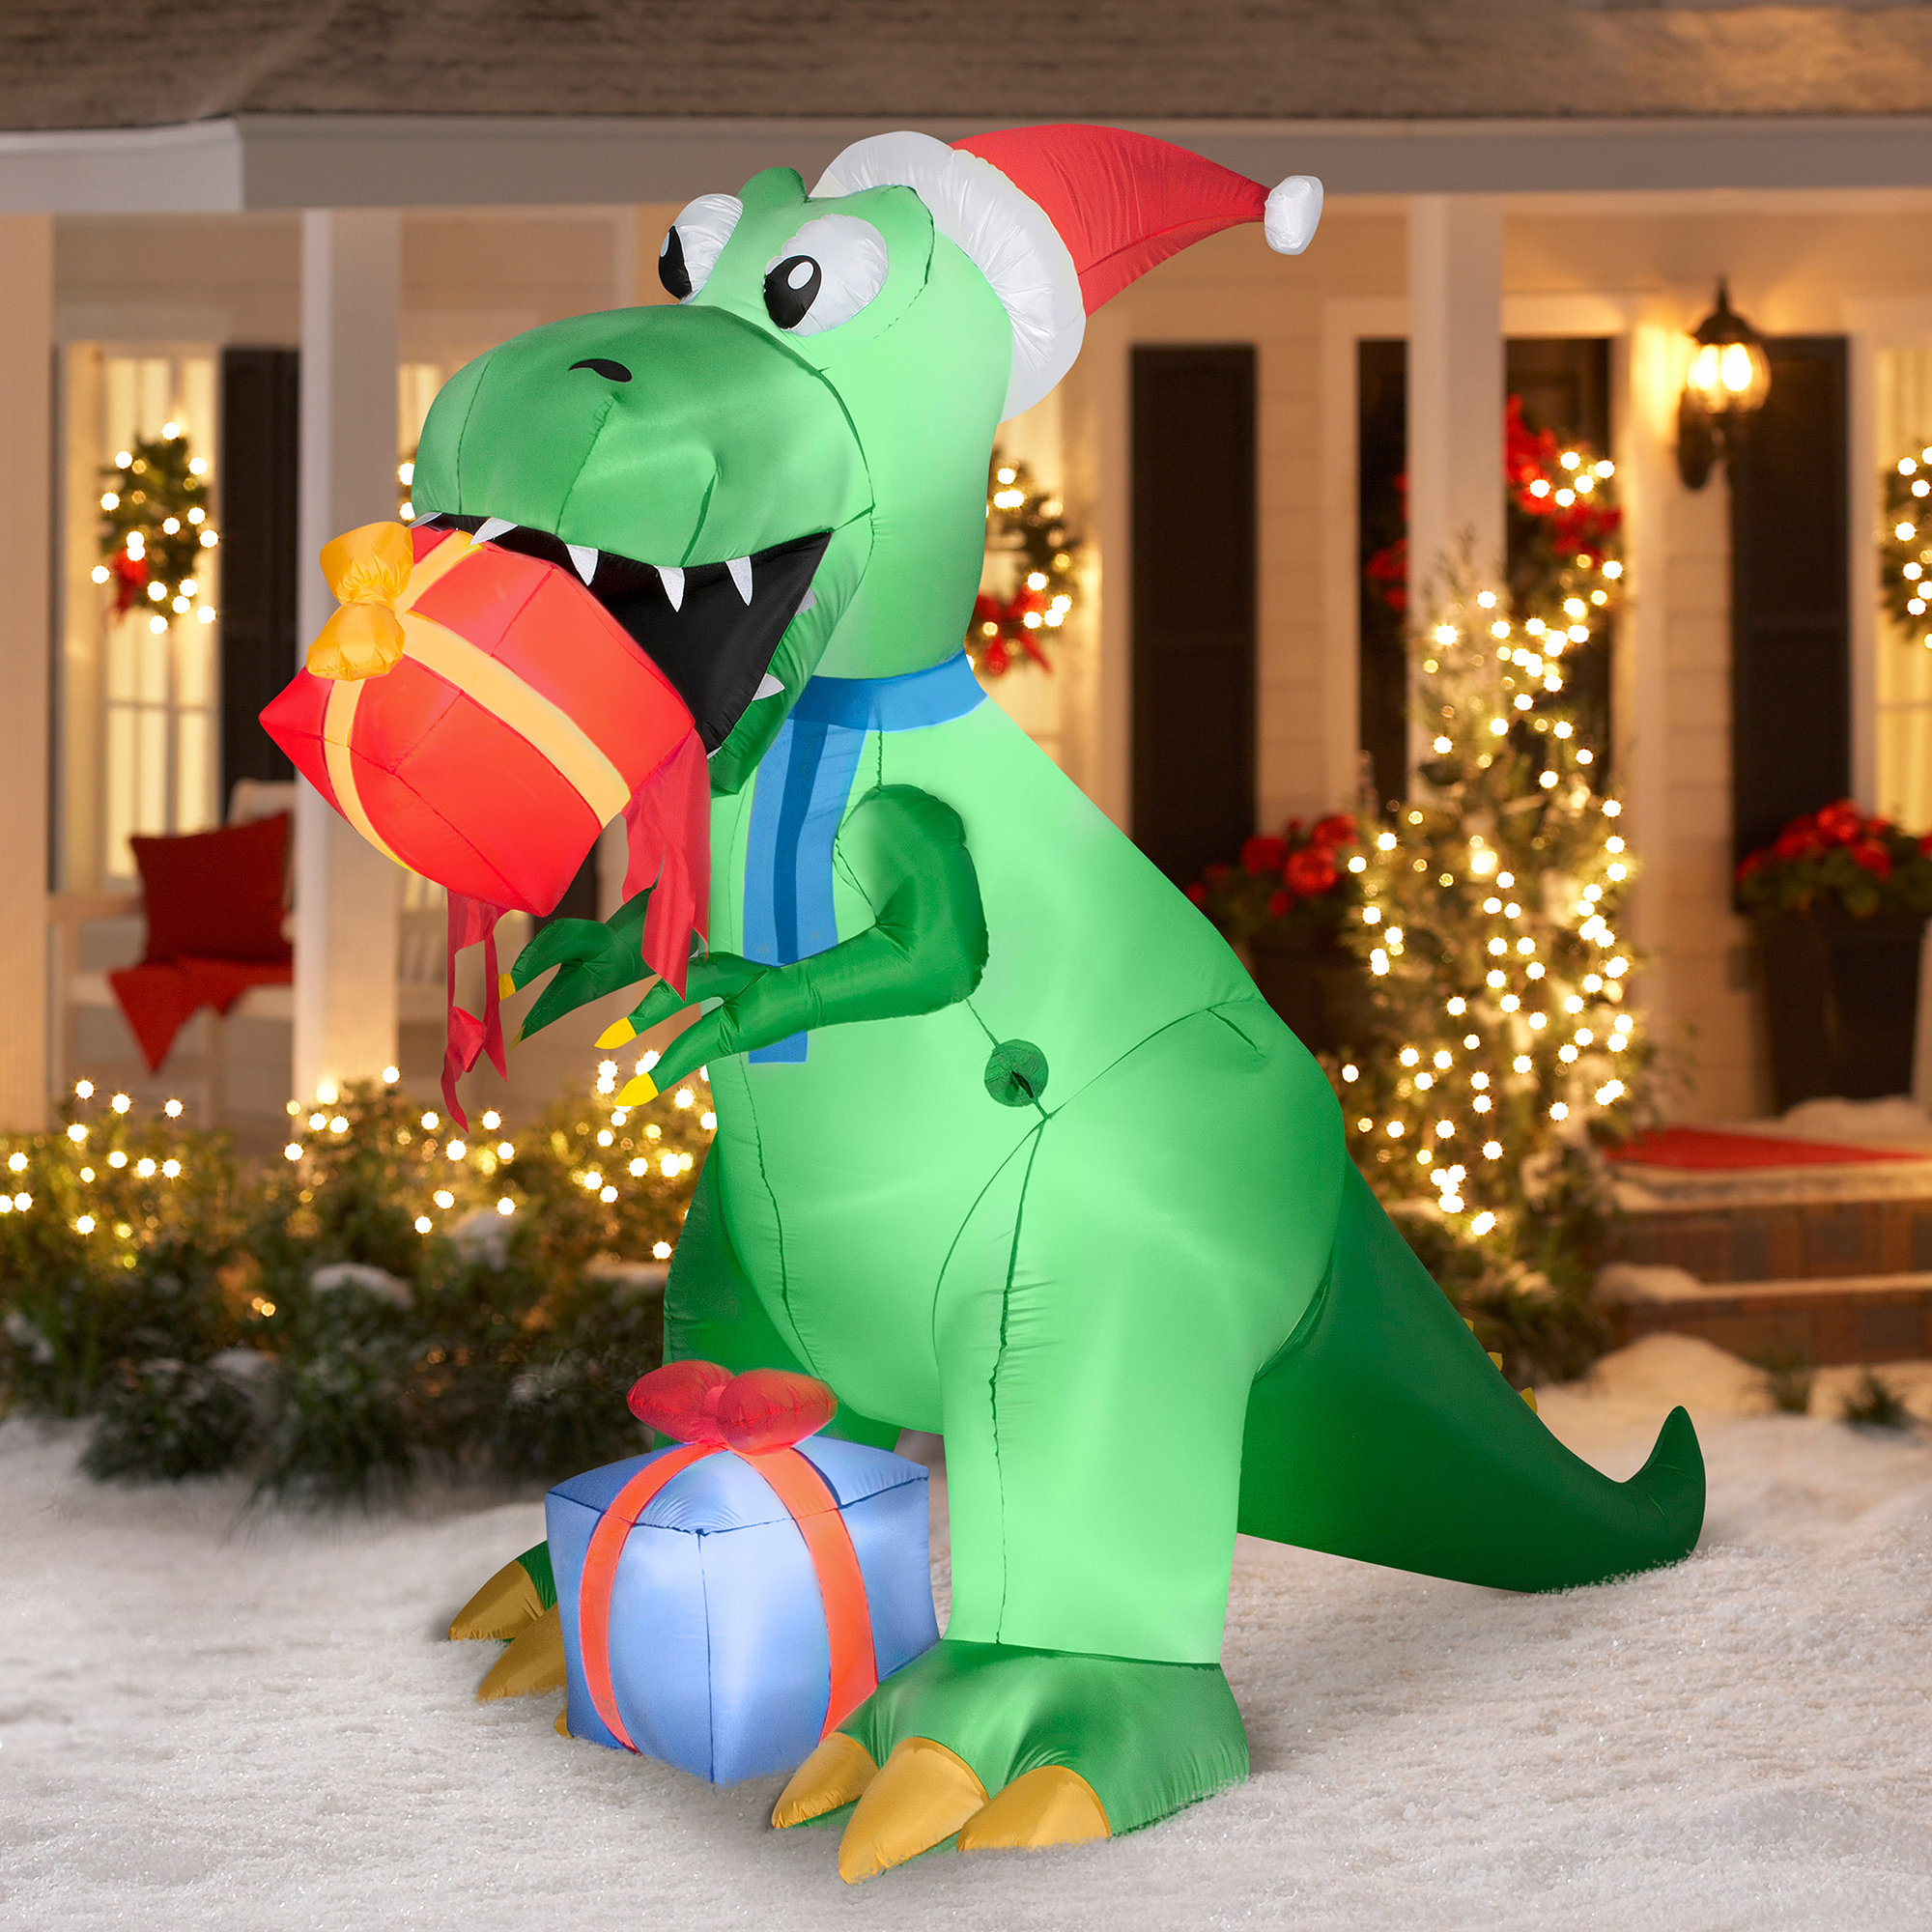 75 t rex with present airblown inflatable christmas prop walmartcom - Walmart Com Christmas Decorations